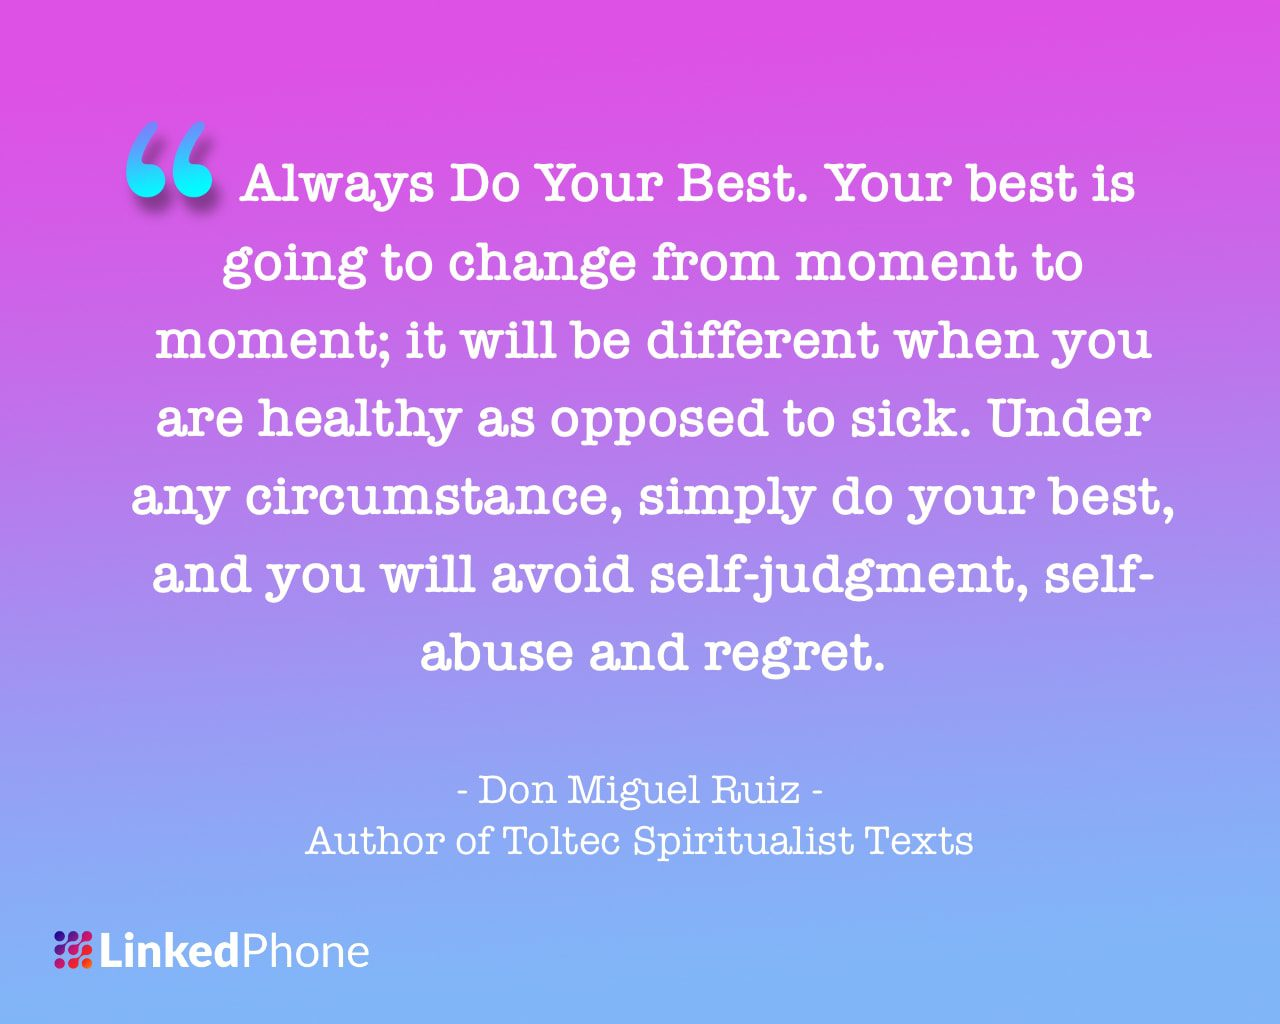 Don Miguel Ruiz - Inspirational Motivational Quotes and Sayings